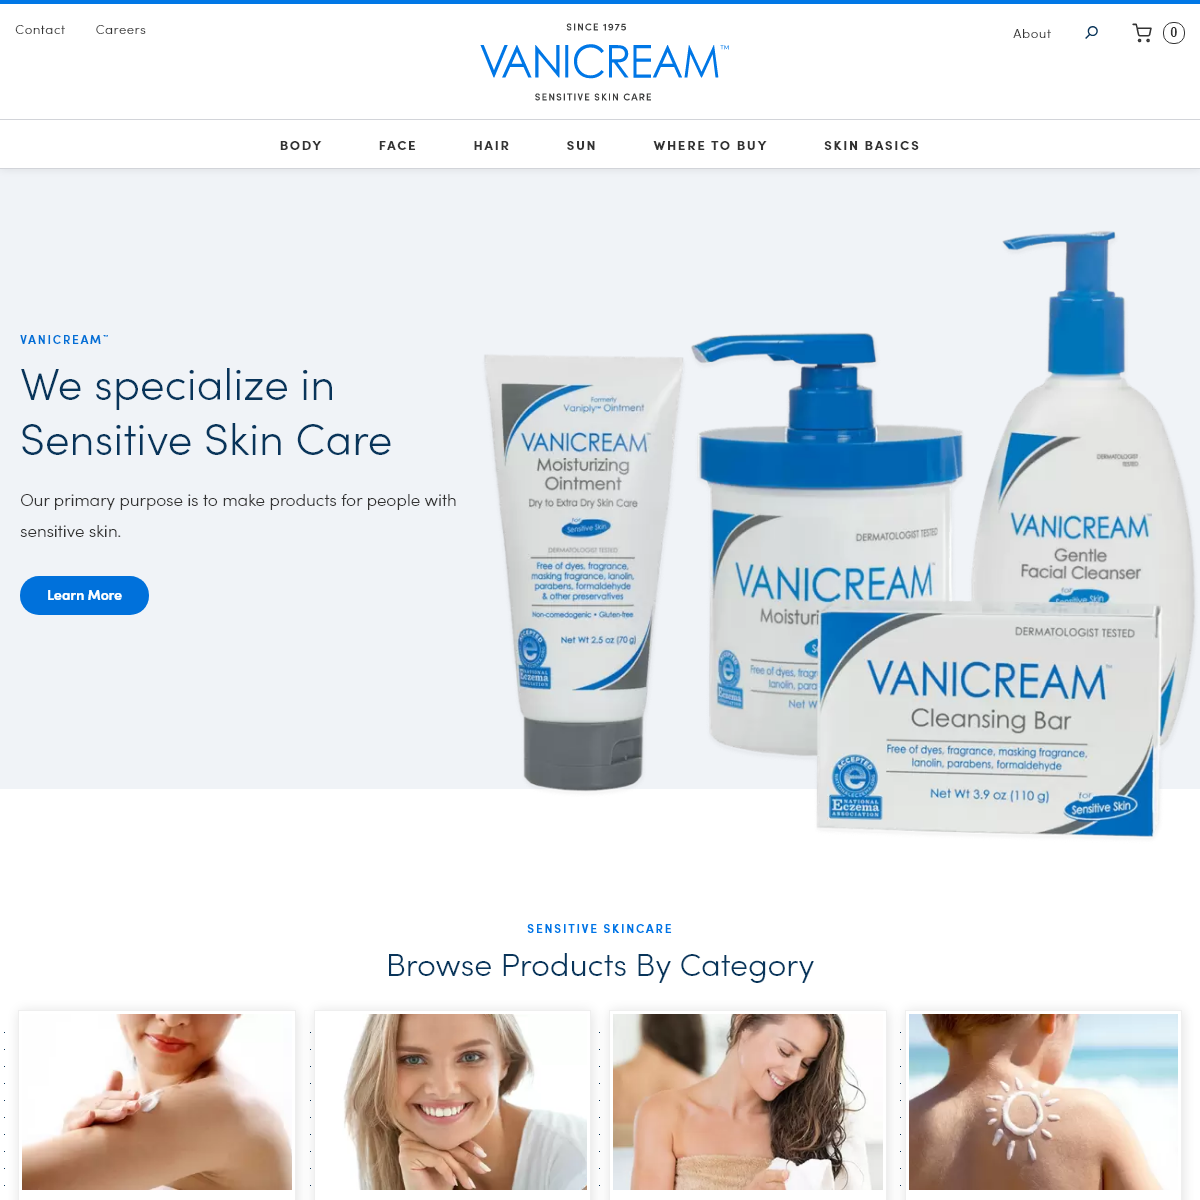 Vanicream - Fragrance Free Products for Sensitive Skin Care